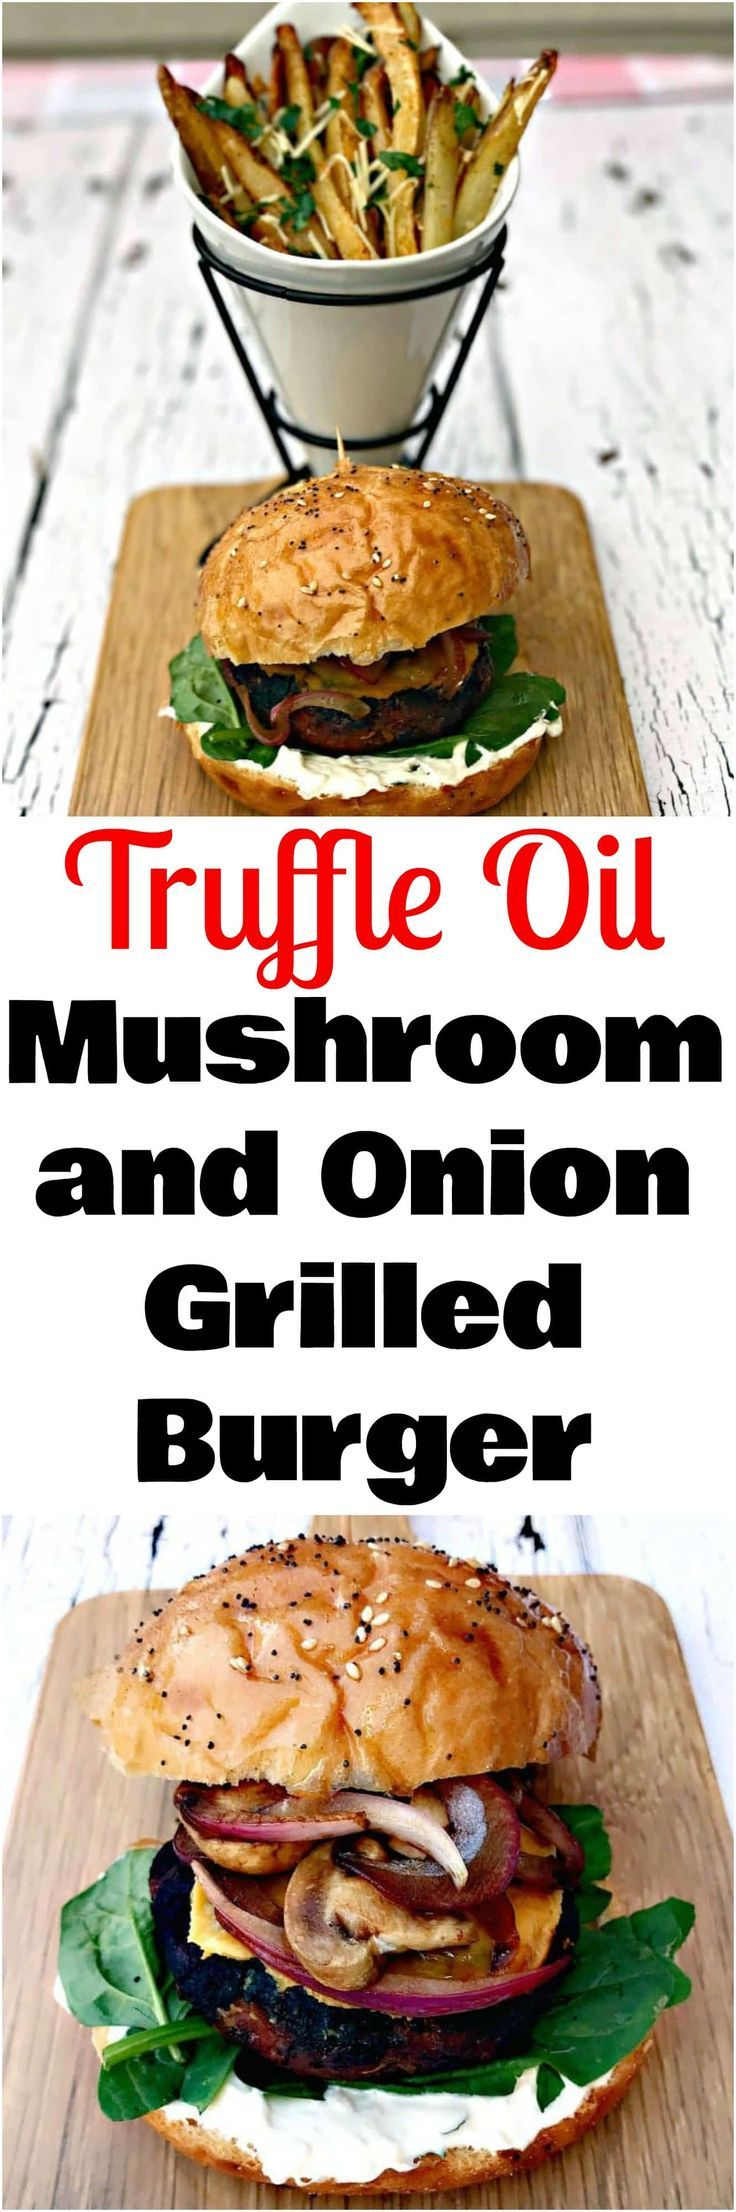 Truffle Oil Mushroom Onion Grilled Burger loaded with cheddar cheese, sauteed balsamic mushrooms and onions on a toasted kaiser bun.